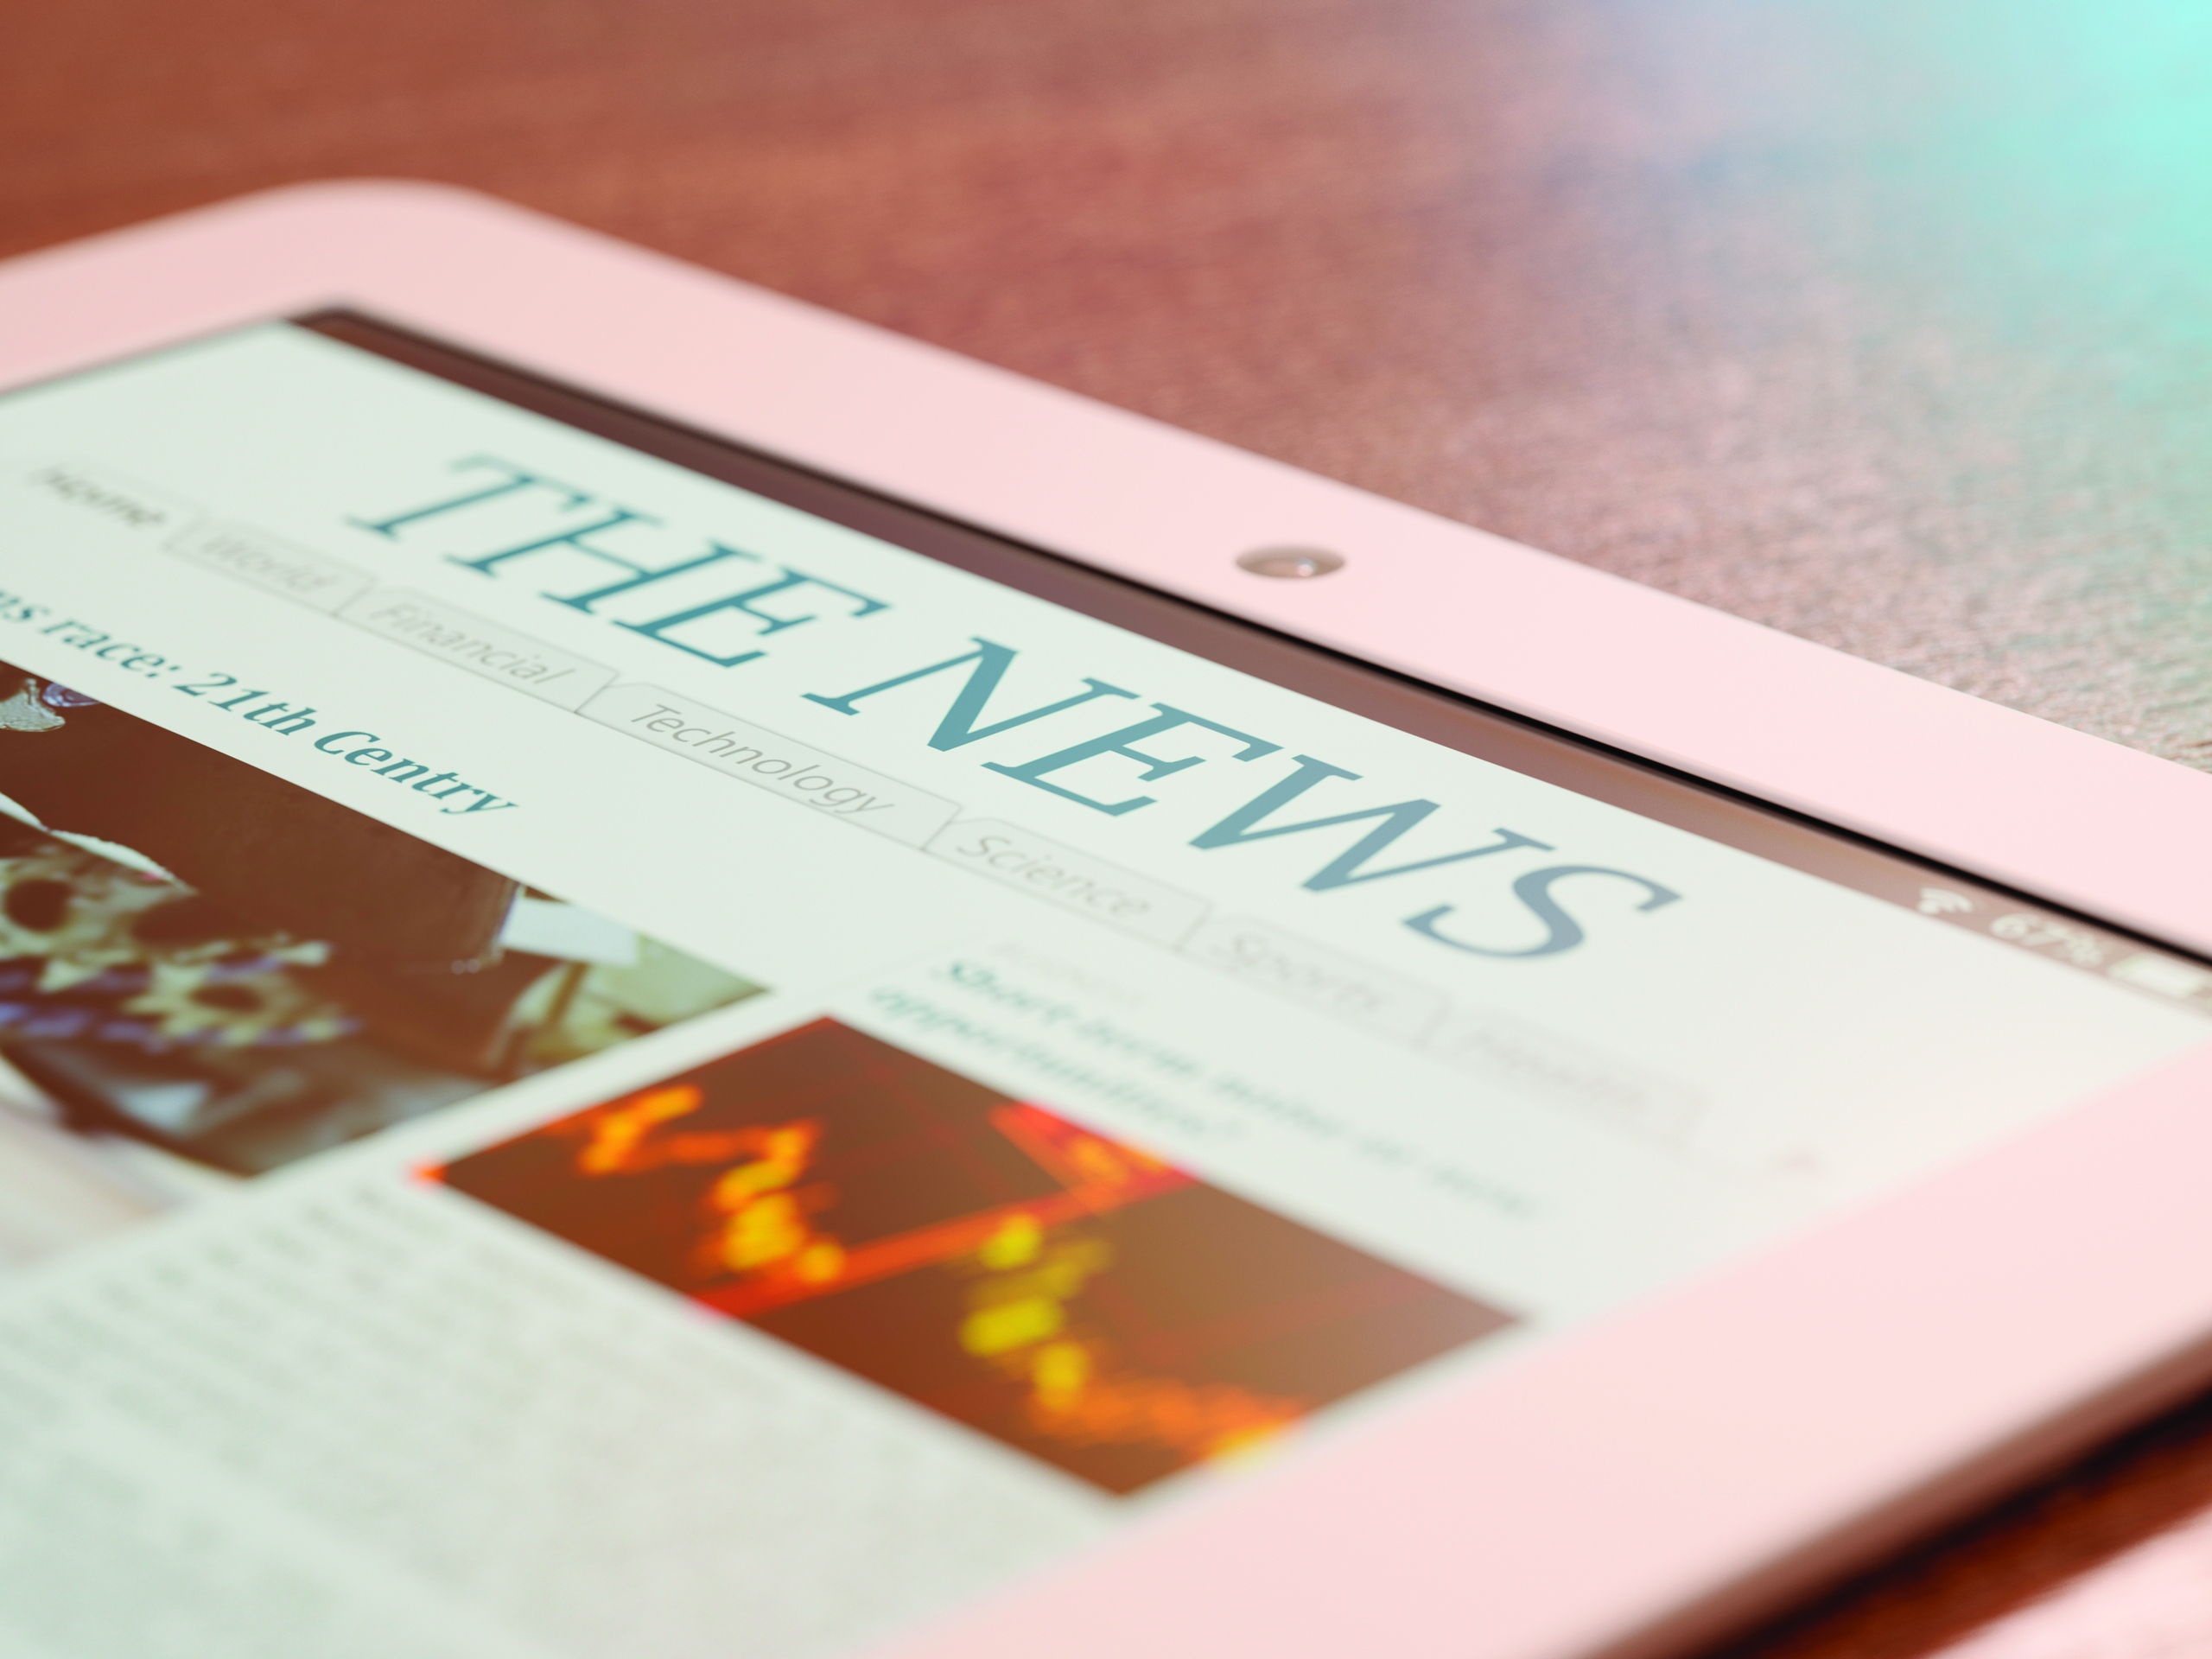 Tablet PC with newspaper app close-up